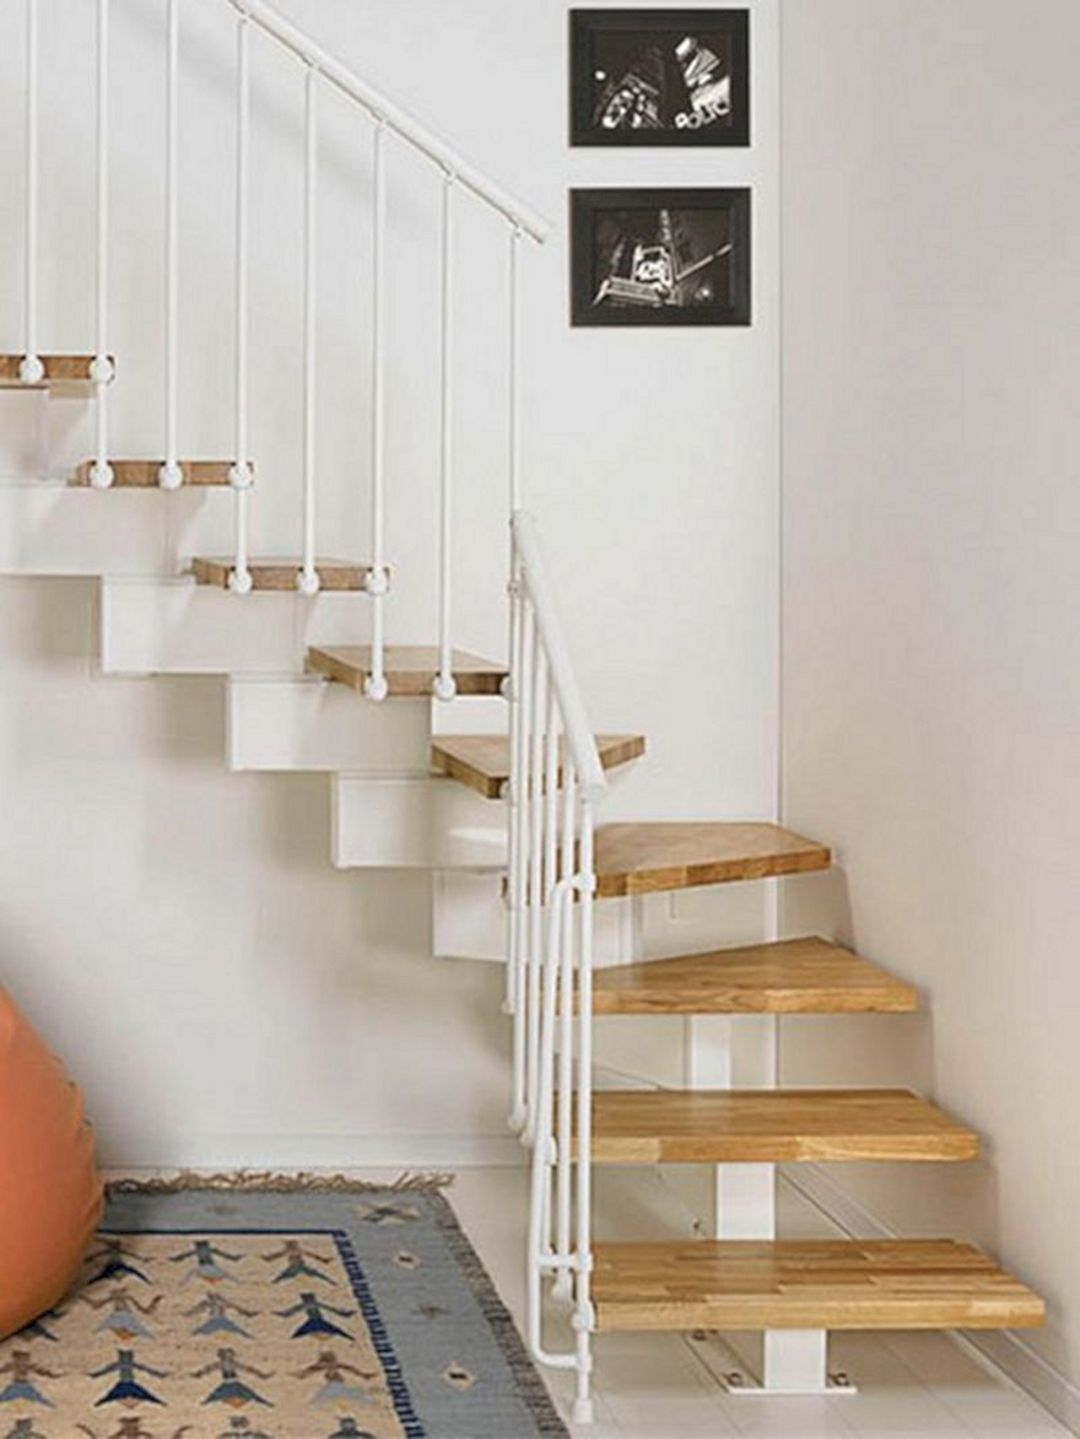 Staircase For Small Space Loft Goodsgn Stairs Design Modern Stairs Design Staircase Design